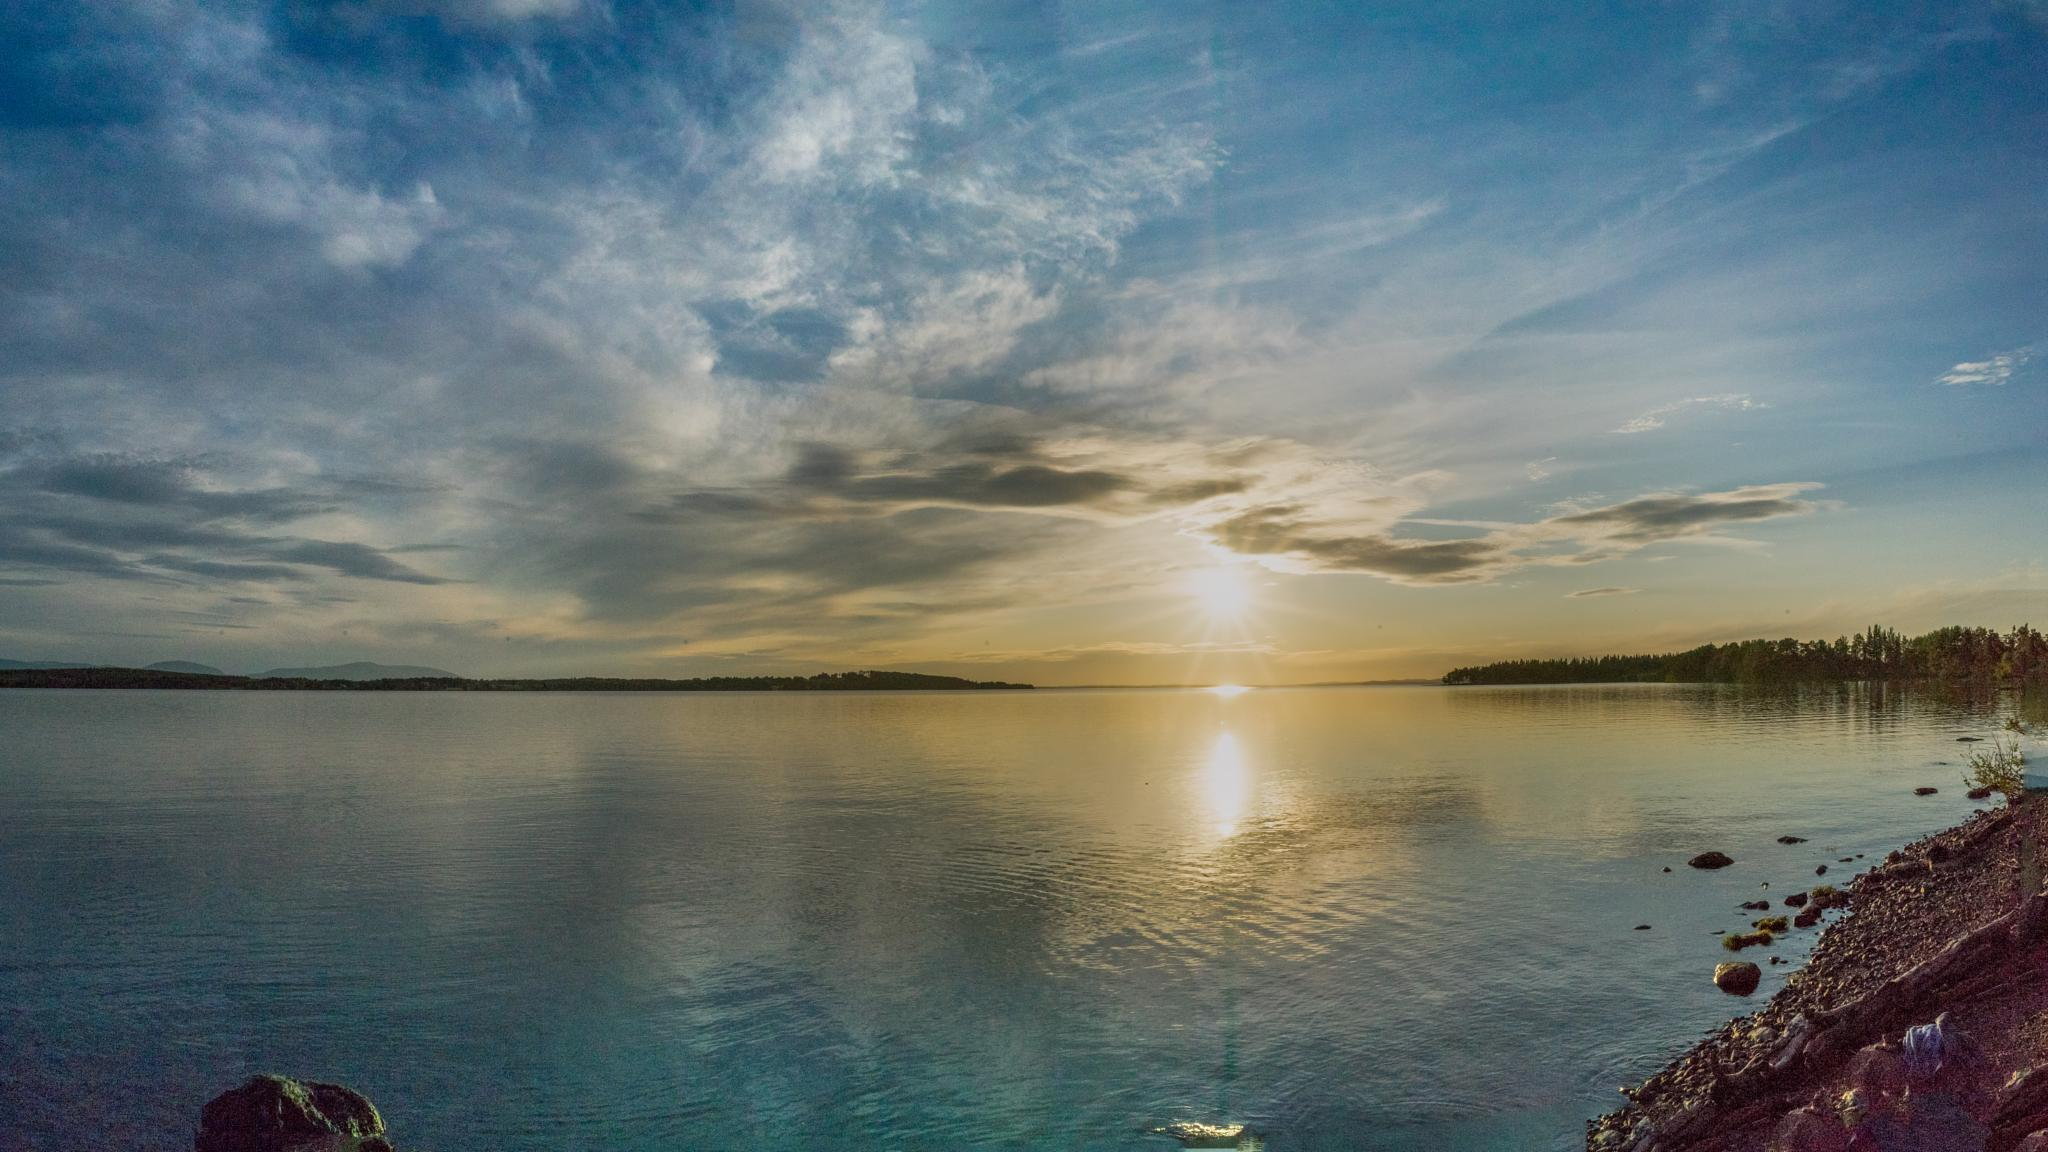 Another sunset by Lautaro.Diaz.Photo